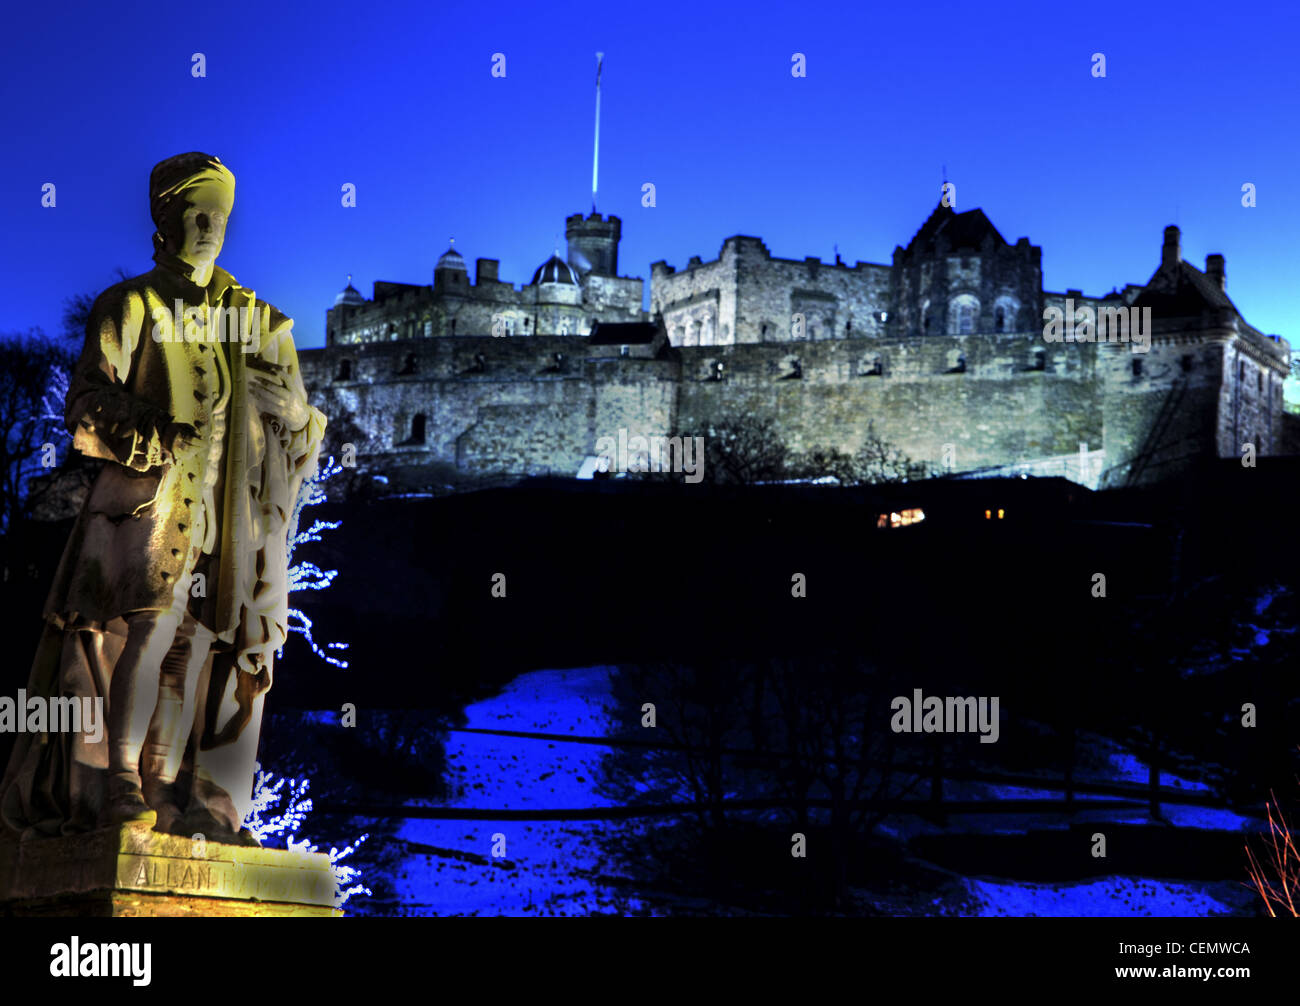 Allan,Ramsey,statue,&,Edinburgh,Castle,at,Dusk,just,before,night,fall,from,Princes,Street,Scotland,UK,gotonysmith,shot,nightshot,scottish,independance,independence,home,rule,devolution,parliament,SNP,national,party@Hotpixuk,GotonySmith,hilltop,historic,history,historical,icon,iconic,kingdom,landmark,landmarks,lowlands,lothian,medieval,monument,old,outcrop,rock,rocky,Royal,family,scotch,scotland,scots,scottish,sight,sights,scenic,sightseeing,skies,sky,skyline,summer,sun,sunny,sunshine,stronghold,tour,tattoo,tourism,tourists,town,towns,towering,uk,united,white,unesco world heritage,Unesco,old town,Edinburgh Castle,dramatic sky,moody,mody sky,dramatic sky,summer,blue,blue sky,lush,green,trees,vegetation,clouds,Edinburg,Castel,Scots,Scottish,scotland,nationalistic,stone,tour,travel,tourist,attraction,Royal Family,buy pictures of Edinburgh,Buy Pictures of,Buy Images Of,Edinburgh Castle